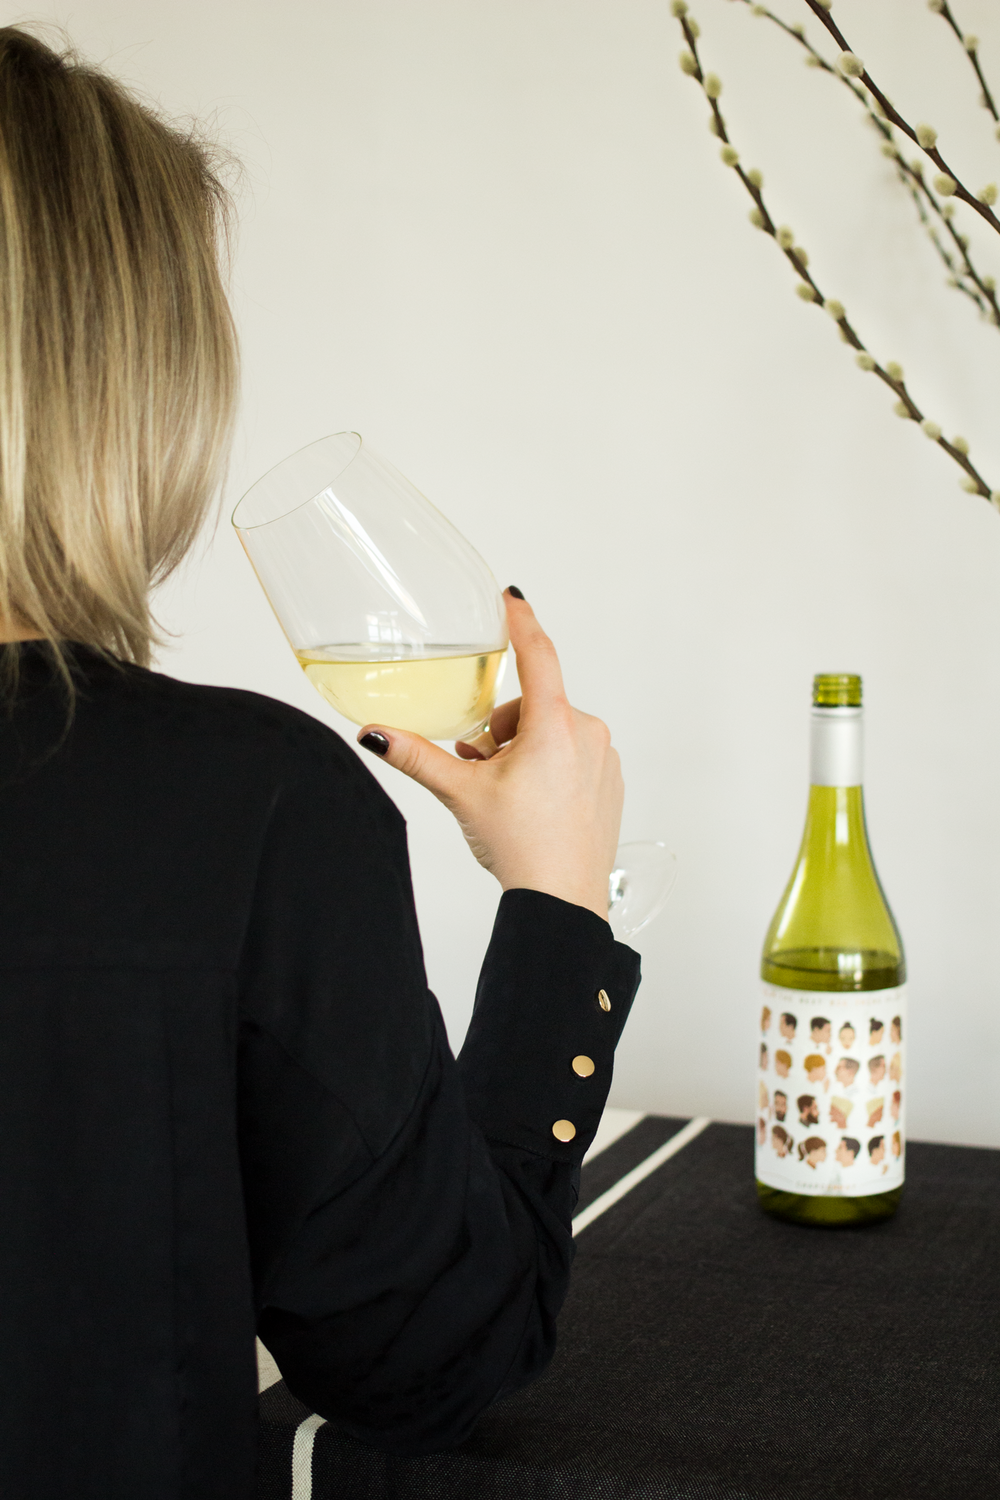 Bottle-Bitches-Review-Magpie-Estate-The-Next-Big-Thing-Chardonnay-Australian-Wine-Review.png